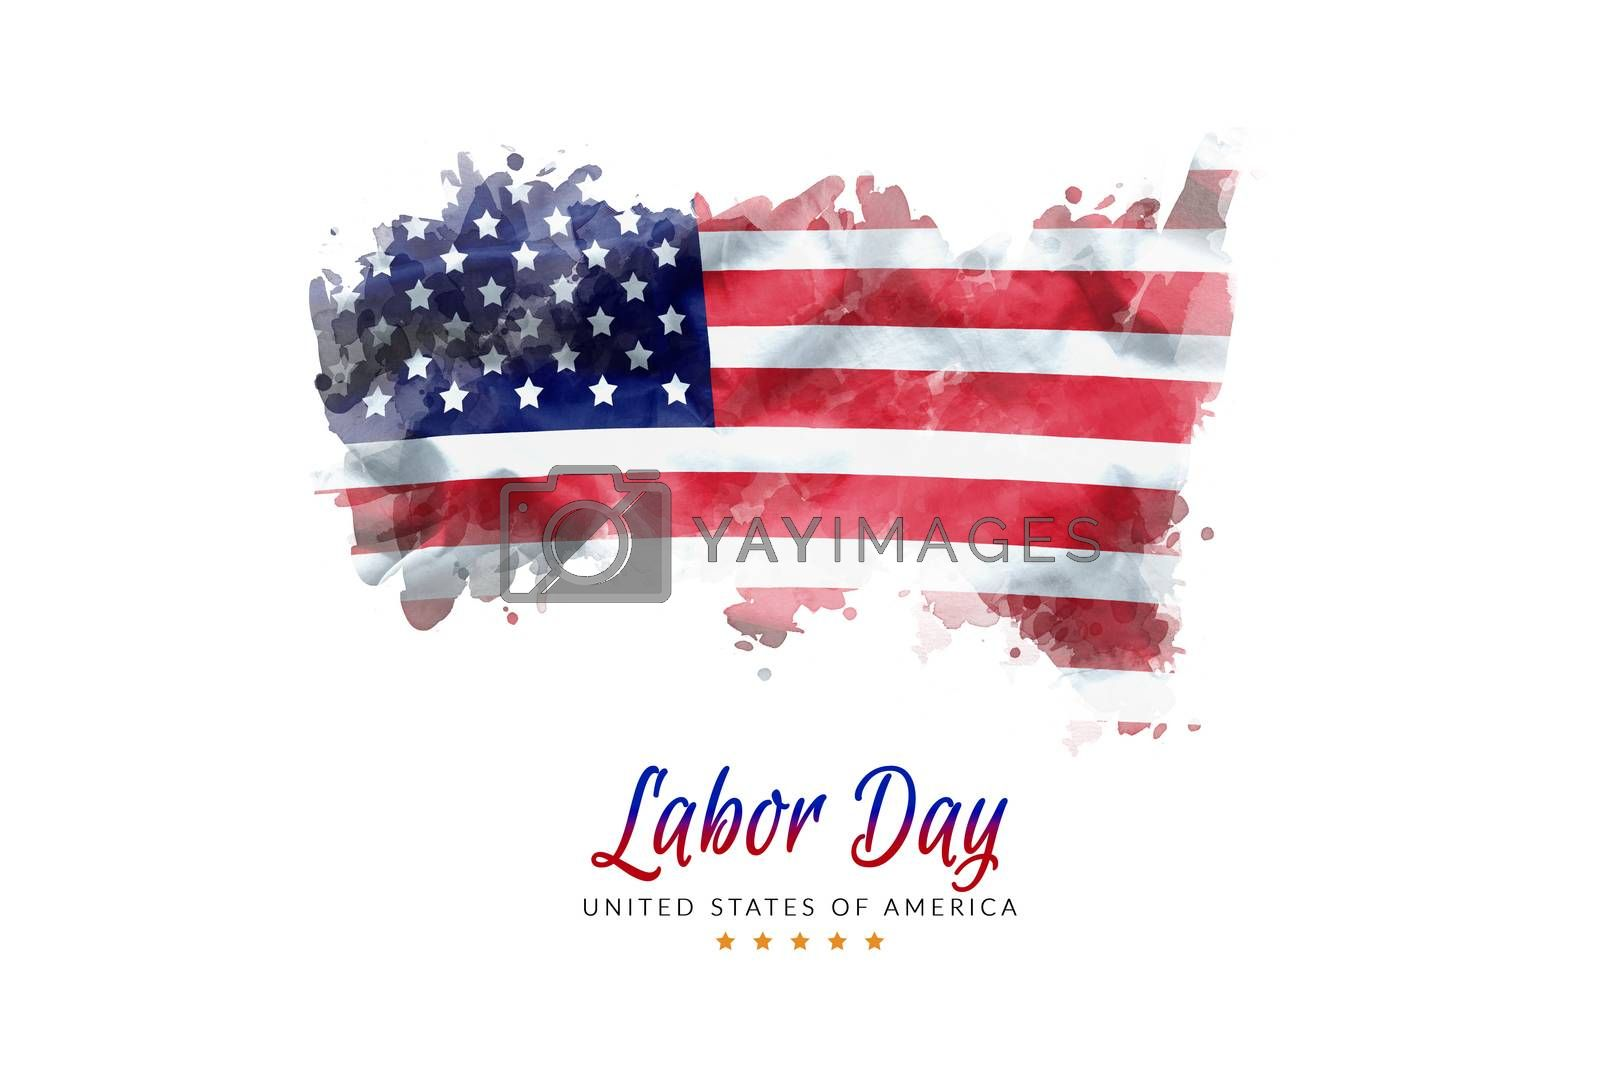 USA Labor Day greeting card with american flag grunge background